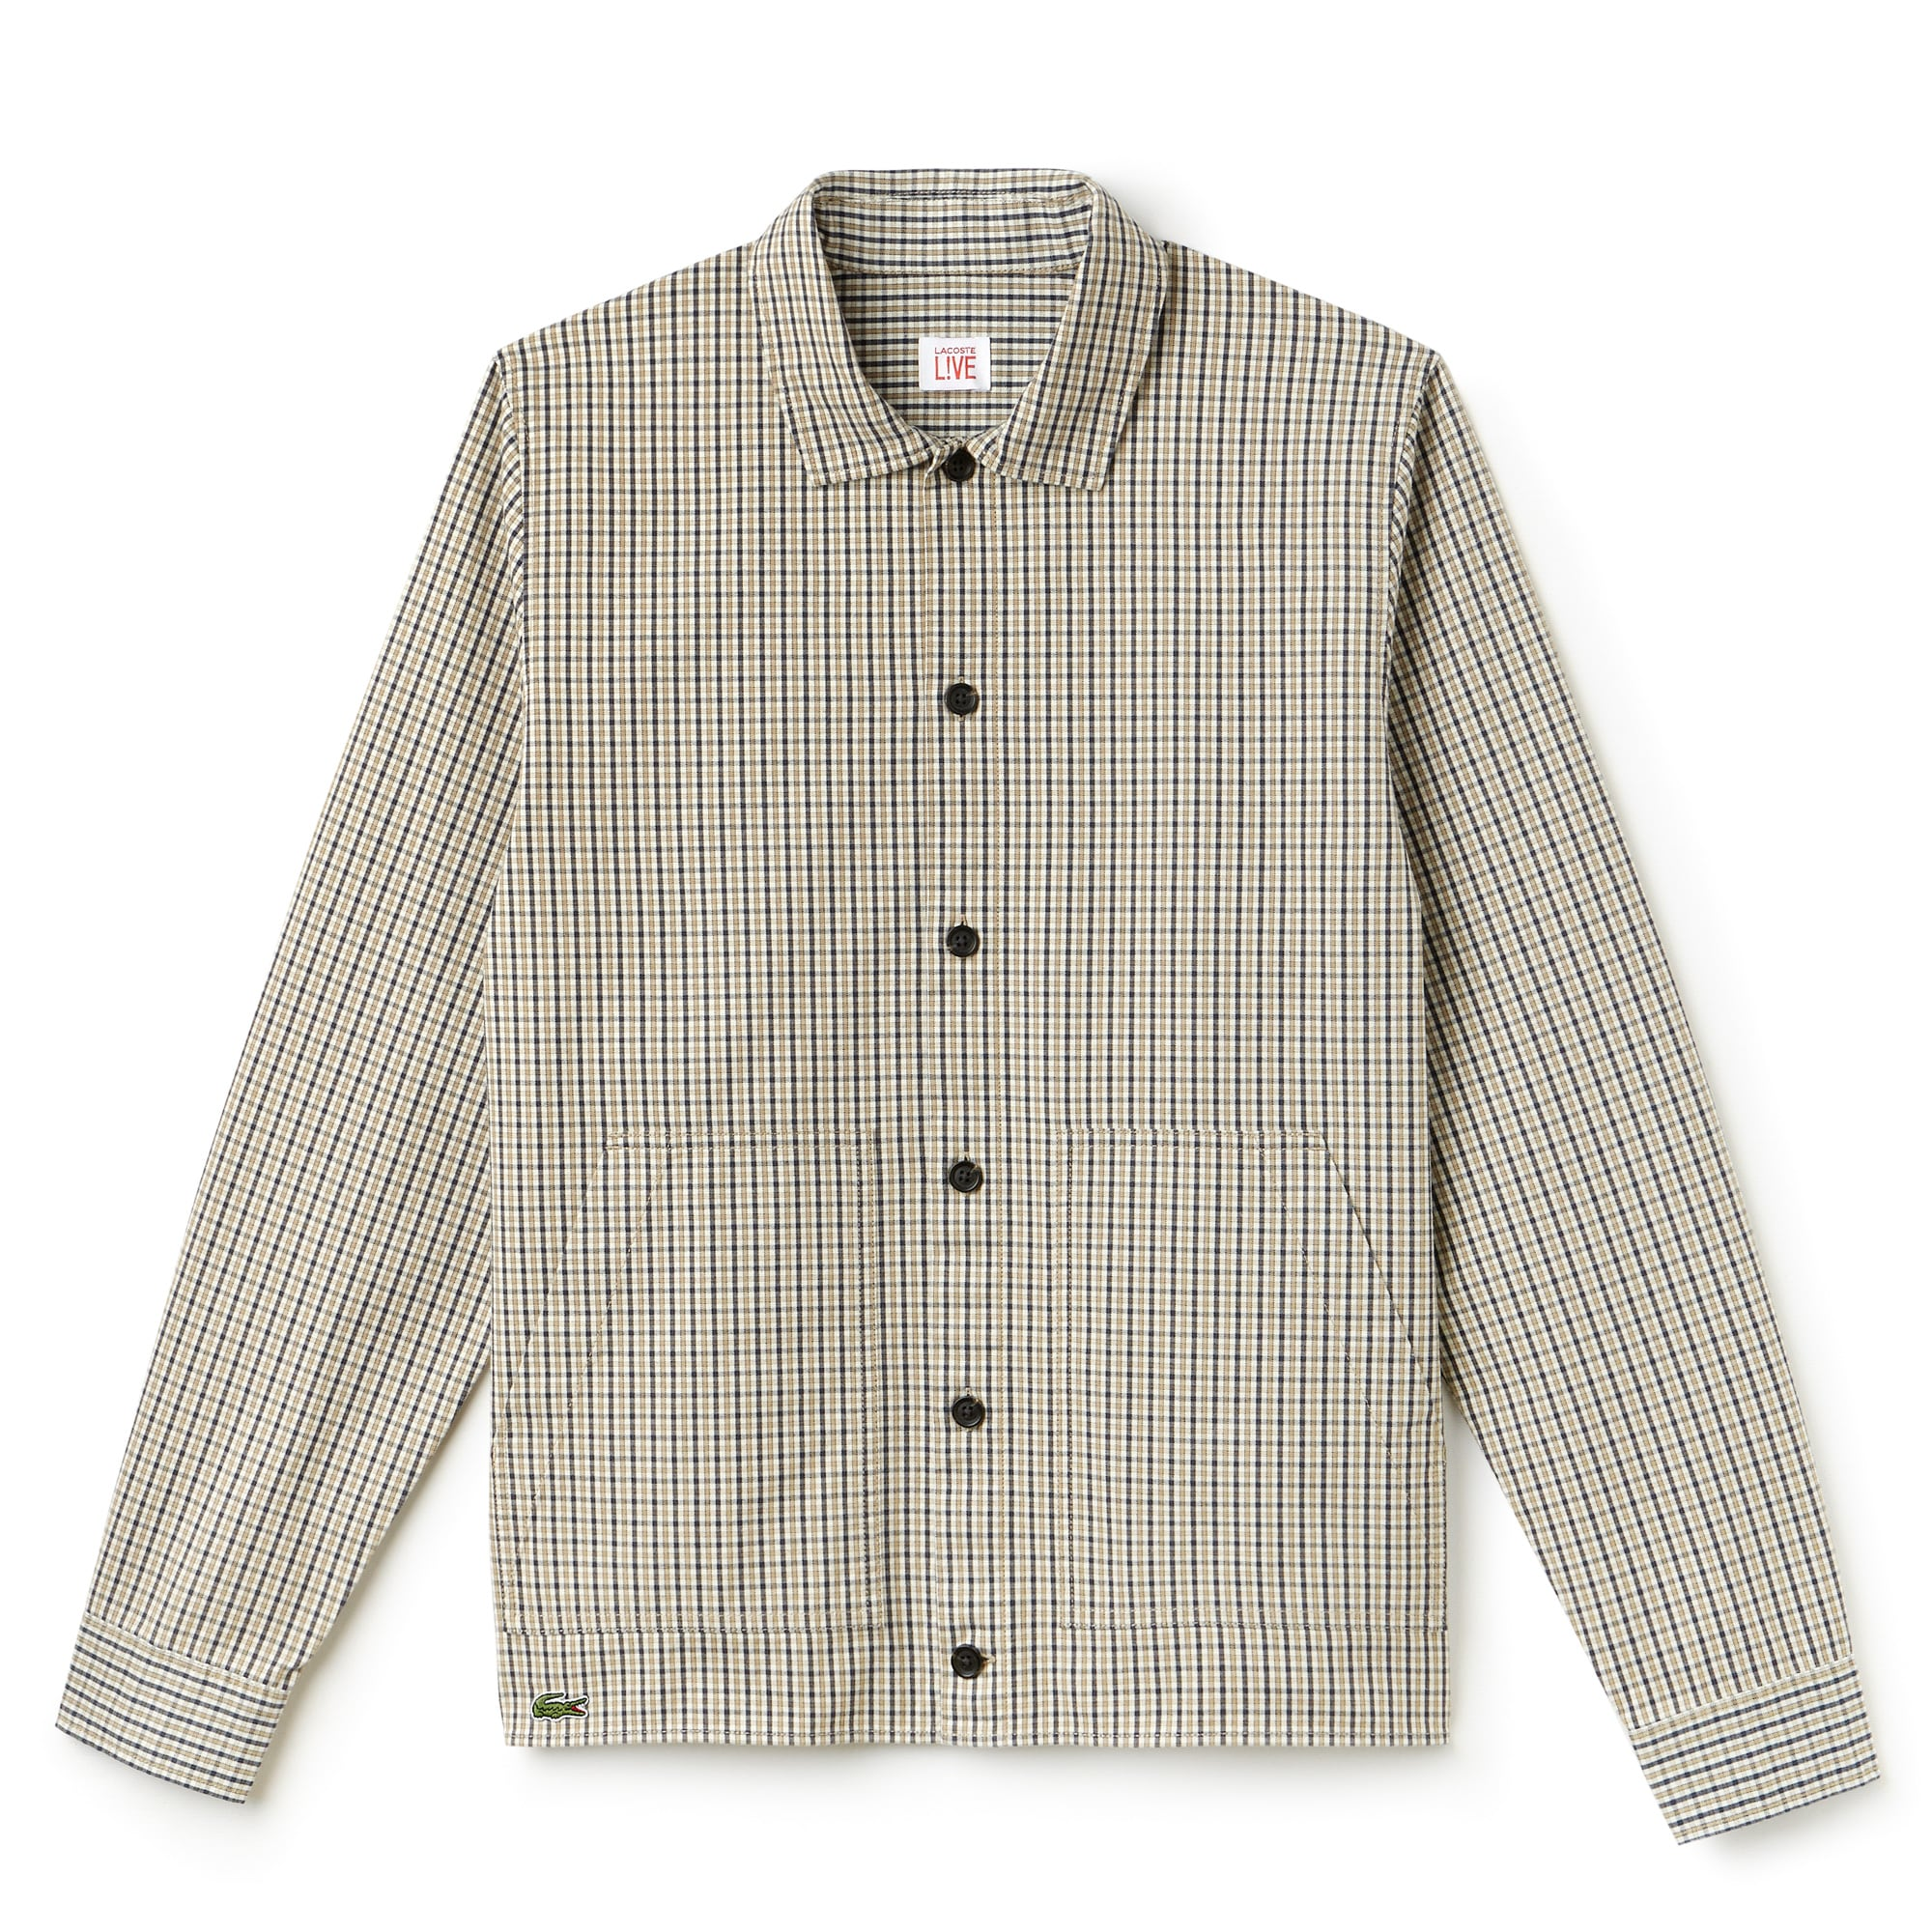 Men's Lacoste LIVE Slim Fit Check Flannel Shirt